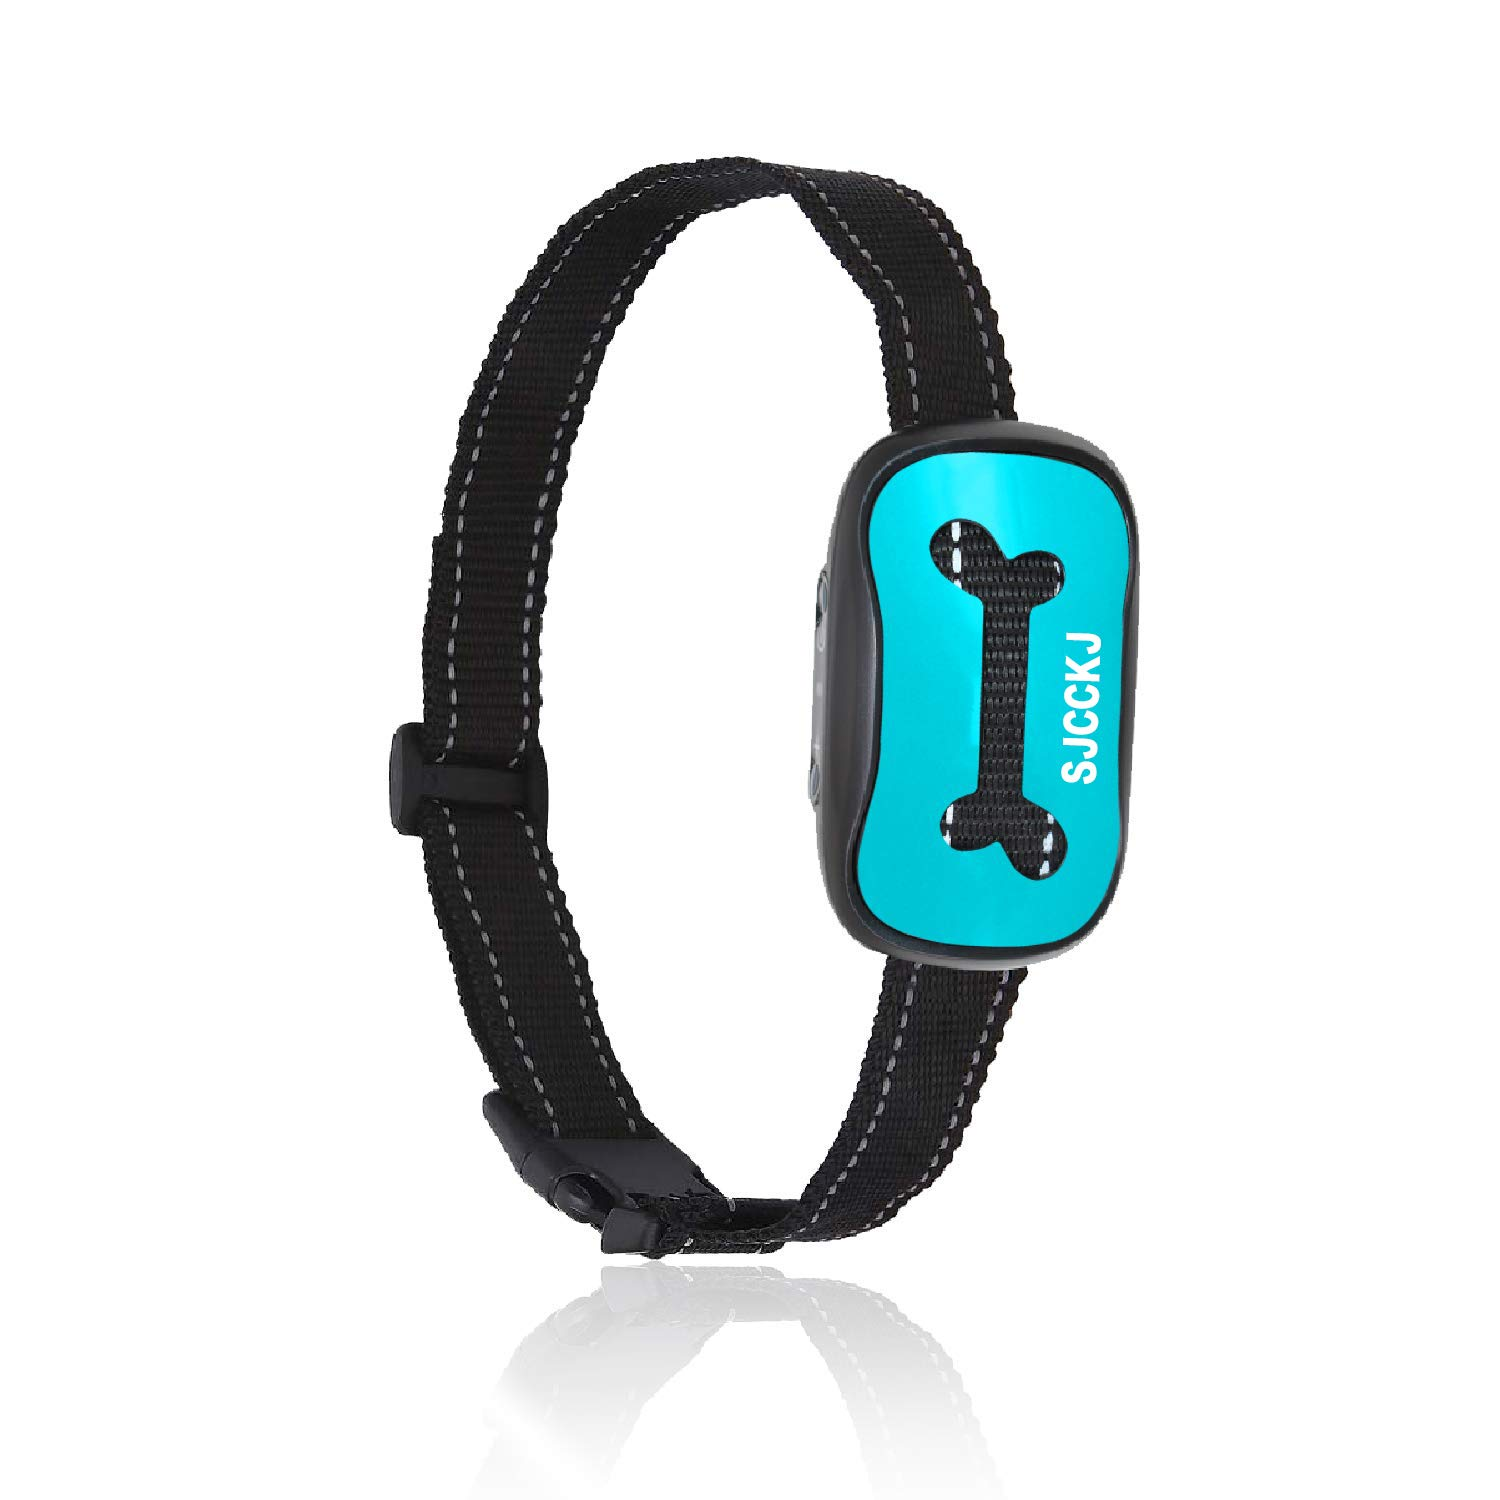 SJCCKJ Newest 2019 Rechargeable Bark Collar – Upgraded Smart Humane Dog Anti-Barking Device – Vibration, Beep Mode for Small, Medium, Large Dogs All Breeds – IPX5 Waterproof